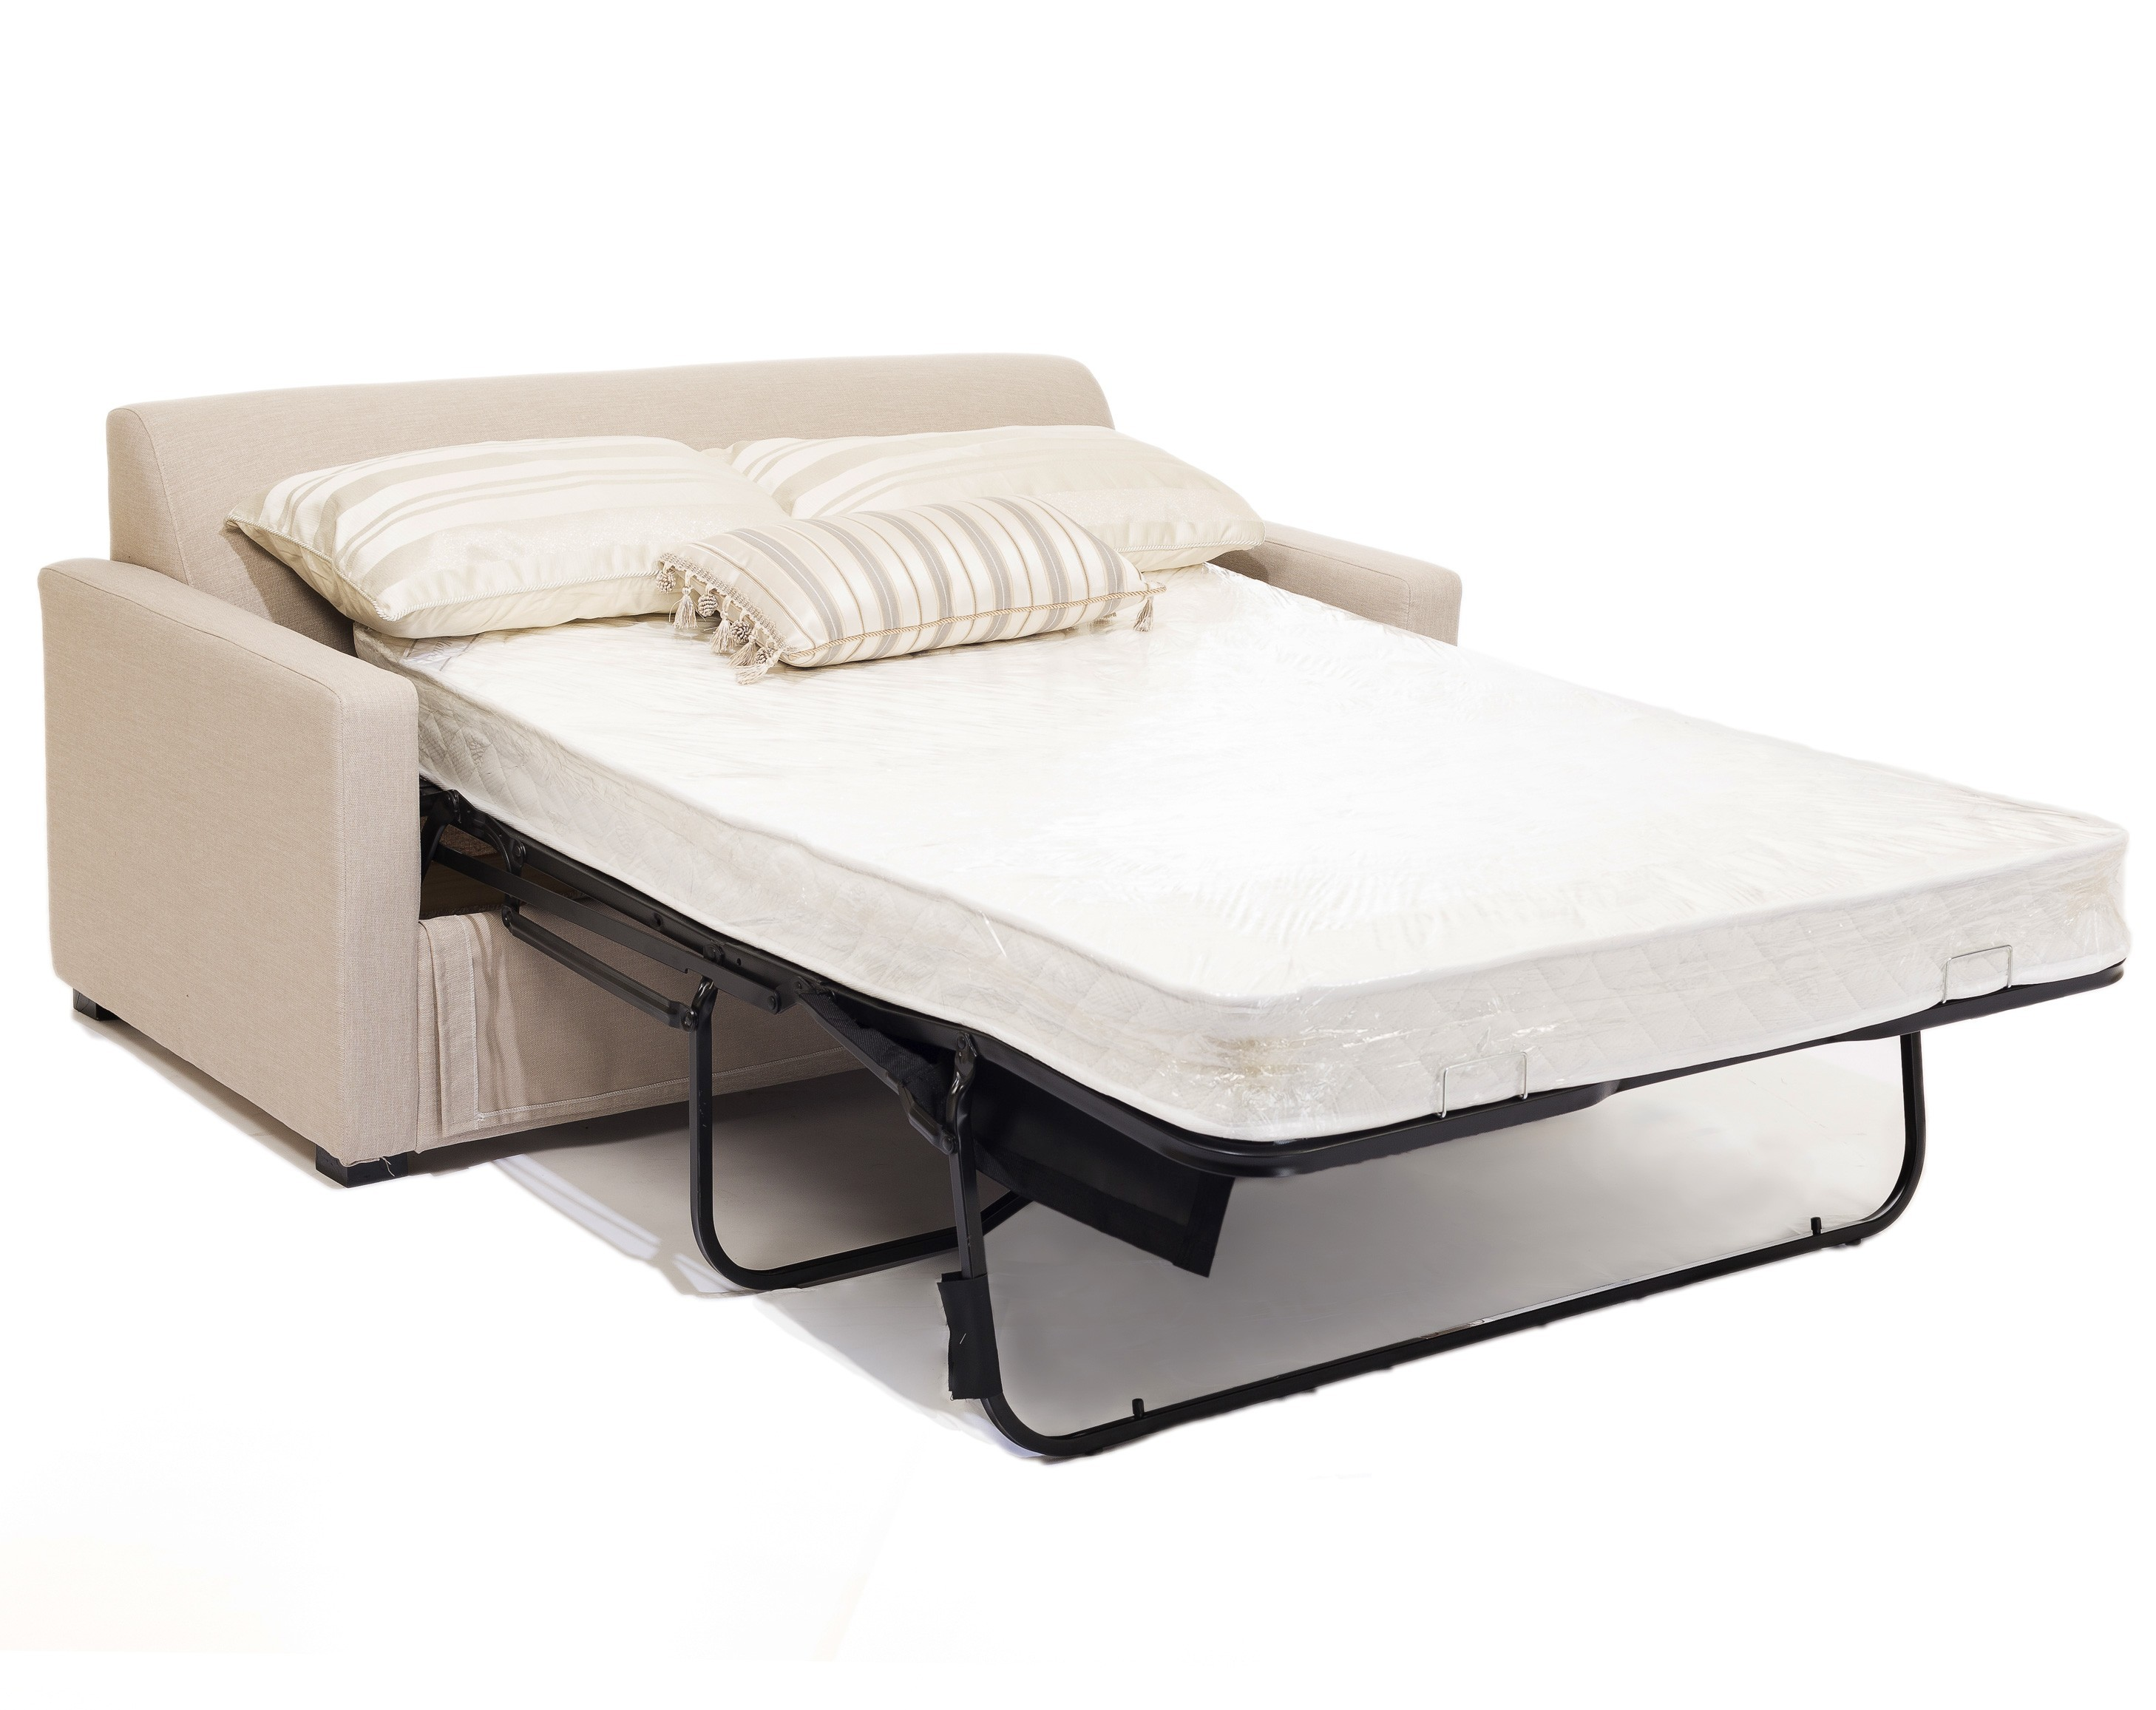 What is A sofa Bed Luxury Fresh sofa Bed Mattress for Modern sofa Inspiration with sofa Collection